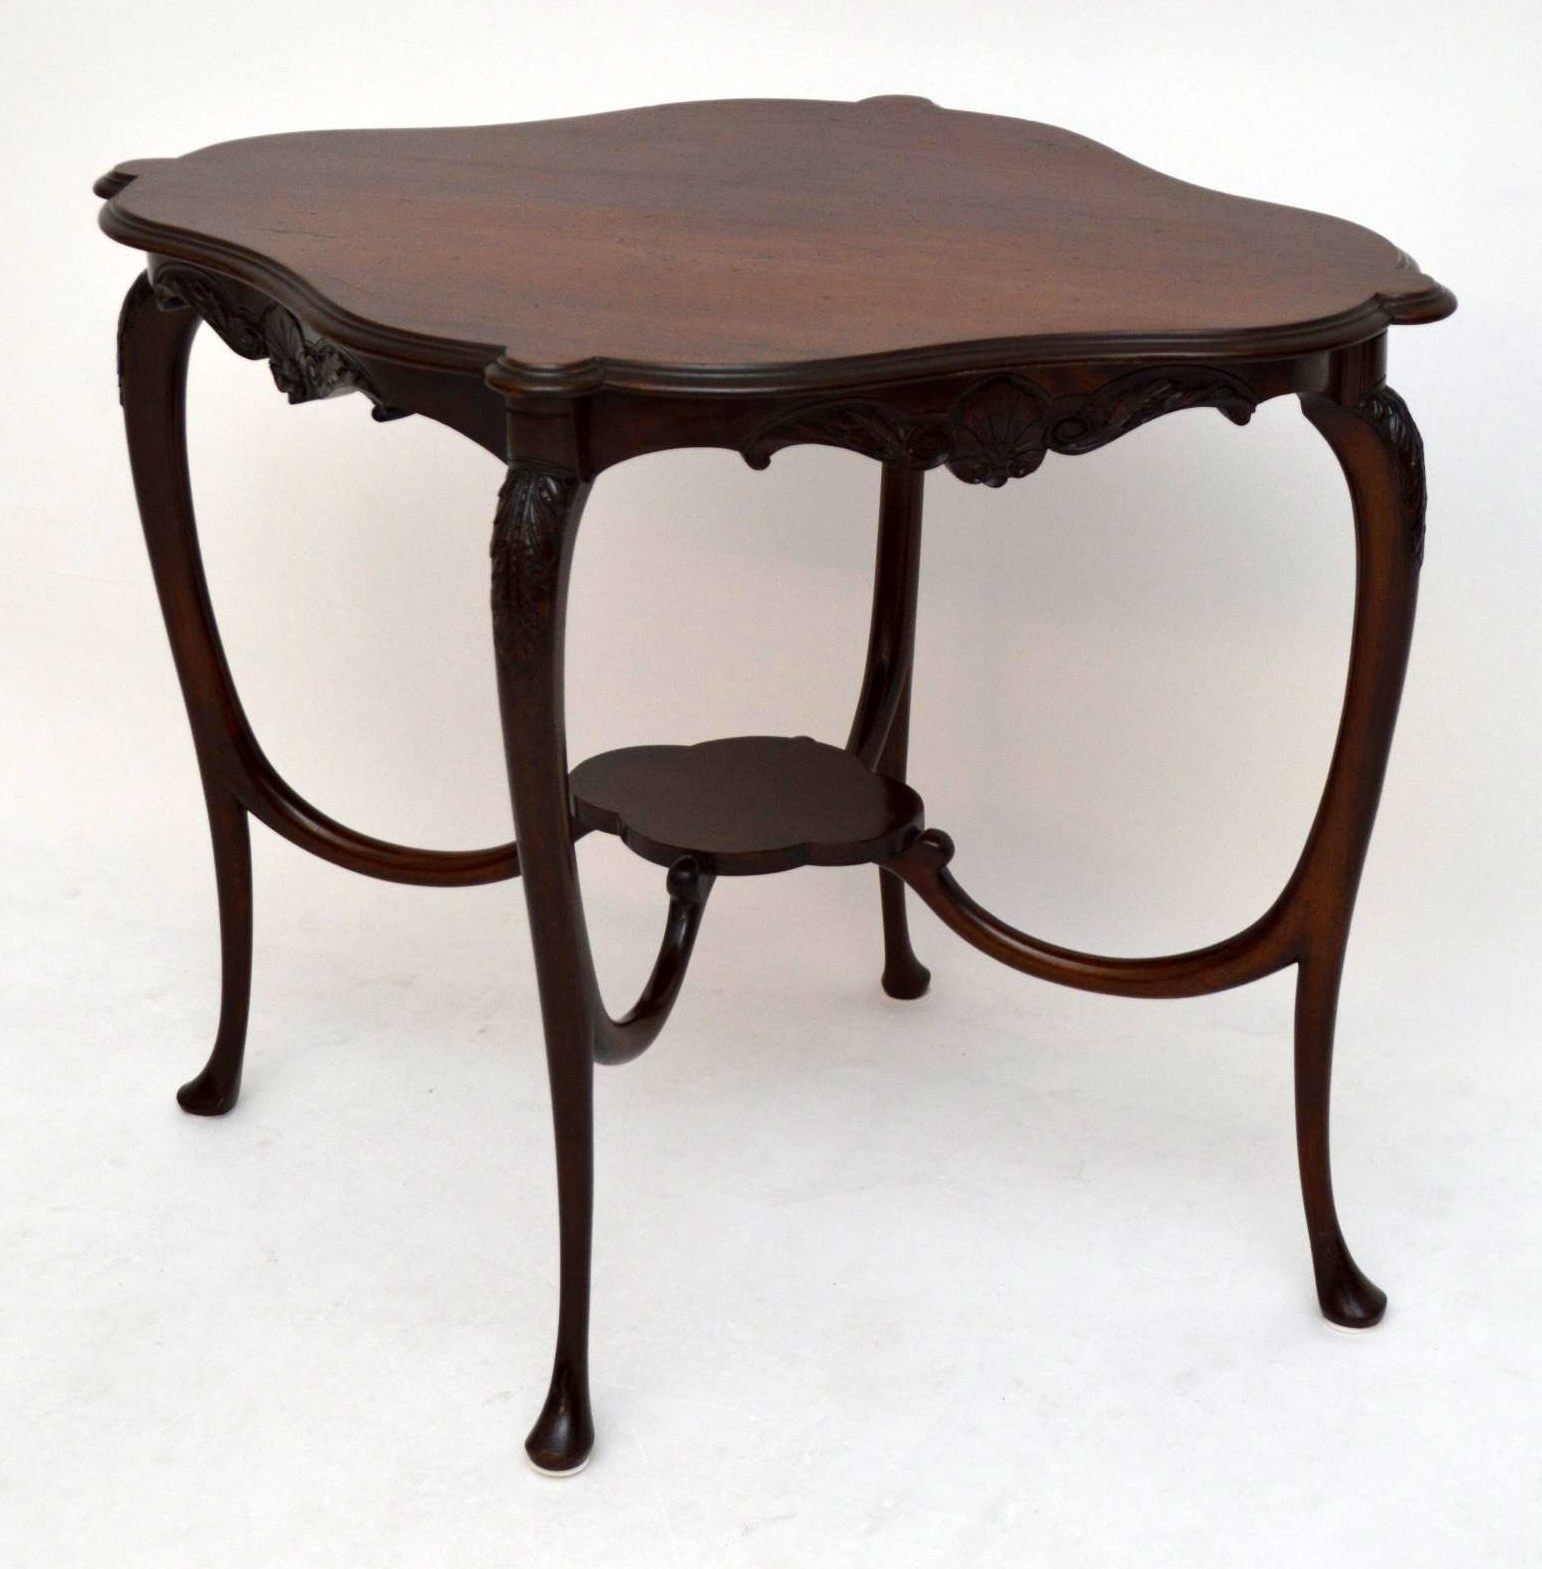 Widely Used Antiqued Art Deco Coffee Tables Inside Antique Art Nouveau Mahogany Occasional Table (View 13 of 20)